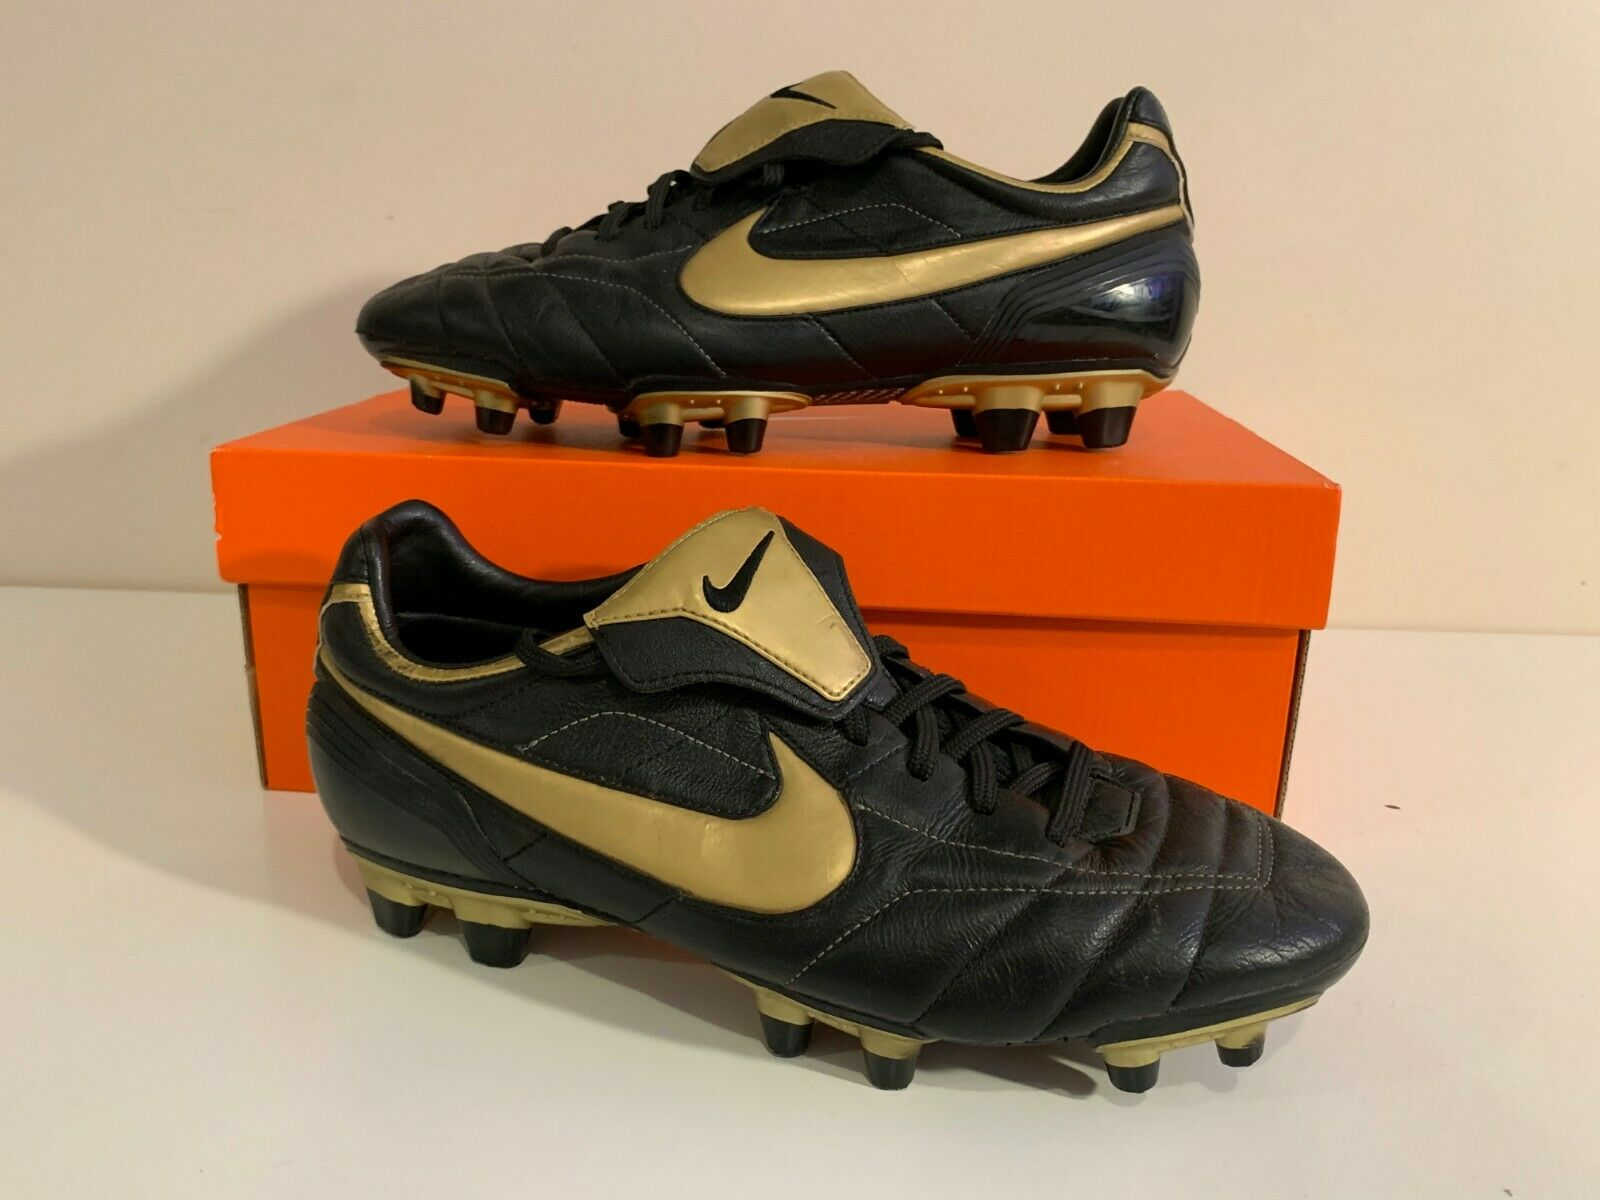 Nike Air Vapor Zoom total 90 FG CTR360 9,5 8,5 43